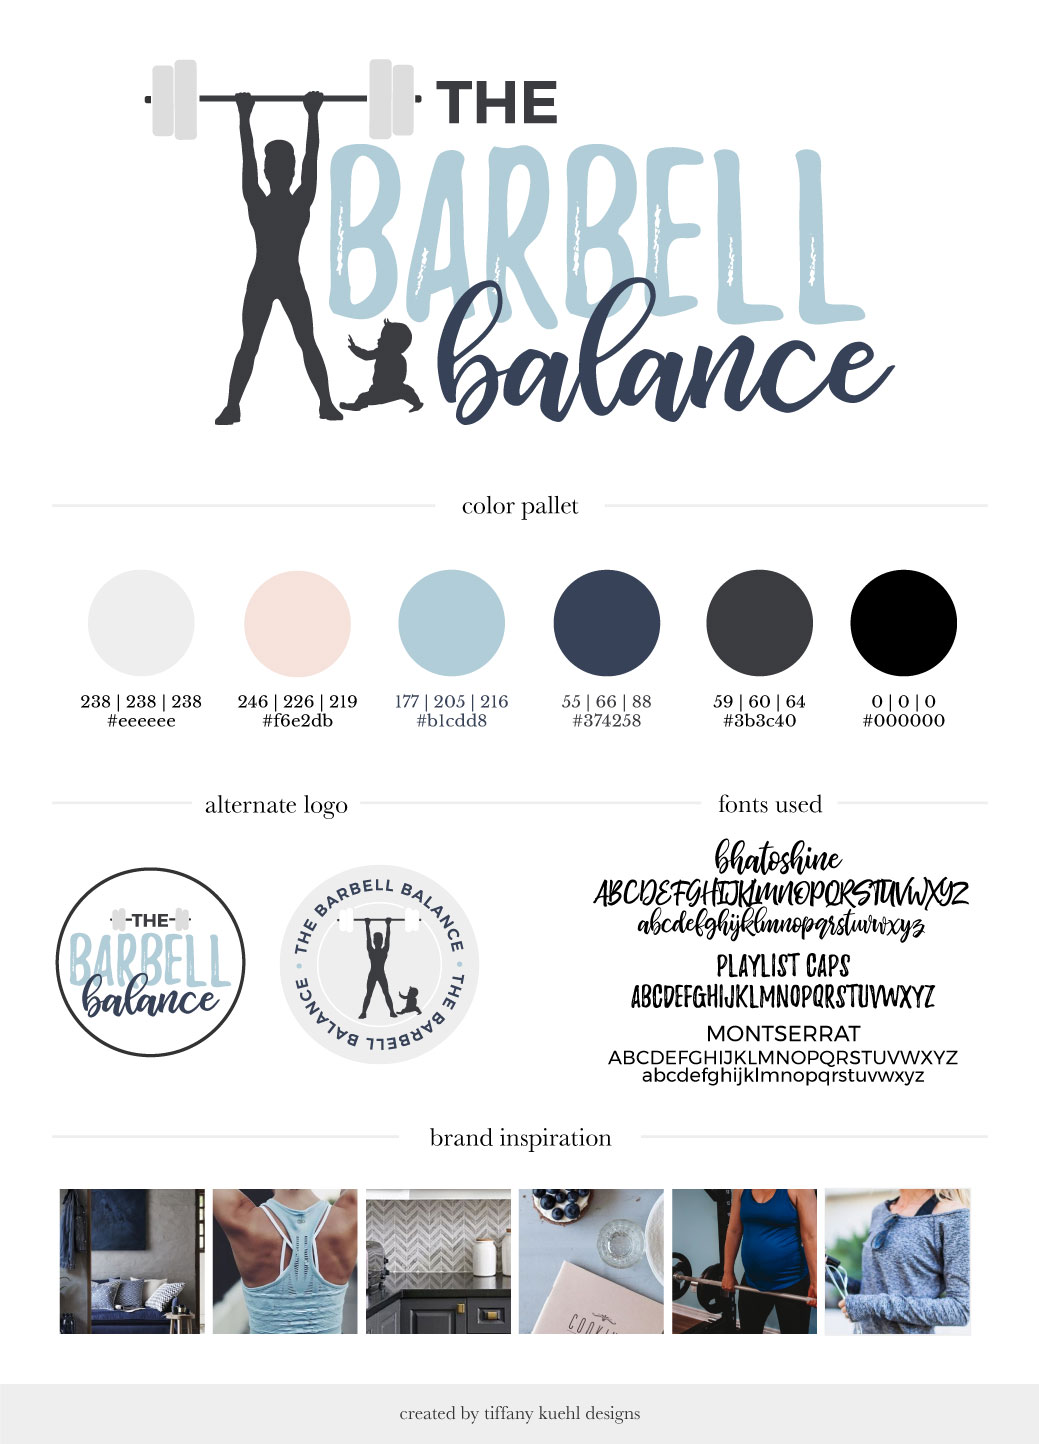 The Barbell Balance Brand Board | Tiffany Kuehl Designs  Terrell Baldock a busy mom with 3 kids and married for almost 12 years. She grew up in a household where weight was always an issue and unhealthy habits were a part of her norm. That's a cycle she hopes to break for not only her family, bot many other families out there. Terrell works with women to empower them to love their bodies on the inside out. Her ideal client is a new or second-time mom who is looking for a healthier approach to fitness during/after pregnancy. She is someone who has an active history but is experiencing issues with her pelvic floor. She is looking to regain her previous abilities without these issues. #postnatalfitness #prenatalfitness #healthymom #healthyfamily #fitnessbranding #fitnessbrandboard #brandboard   www.thebarbellbalance.com